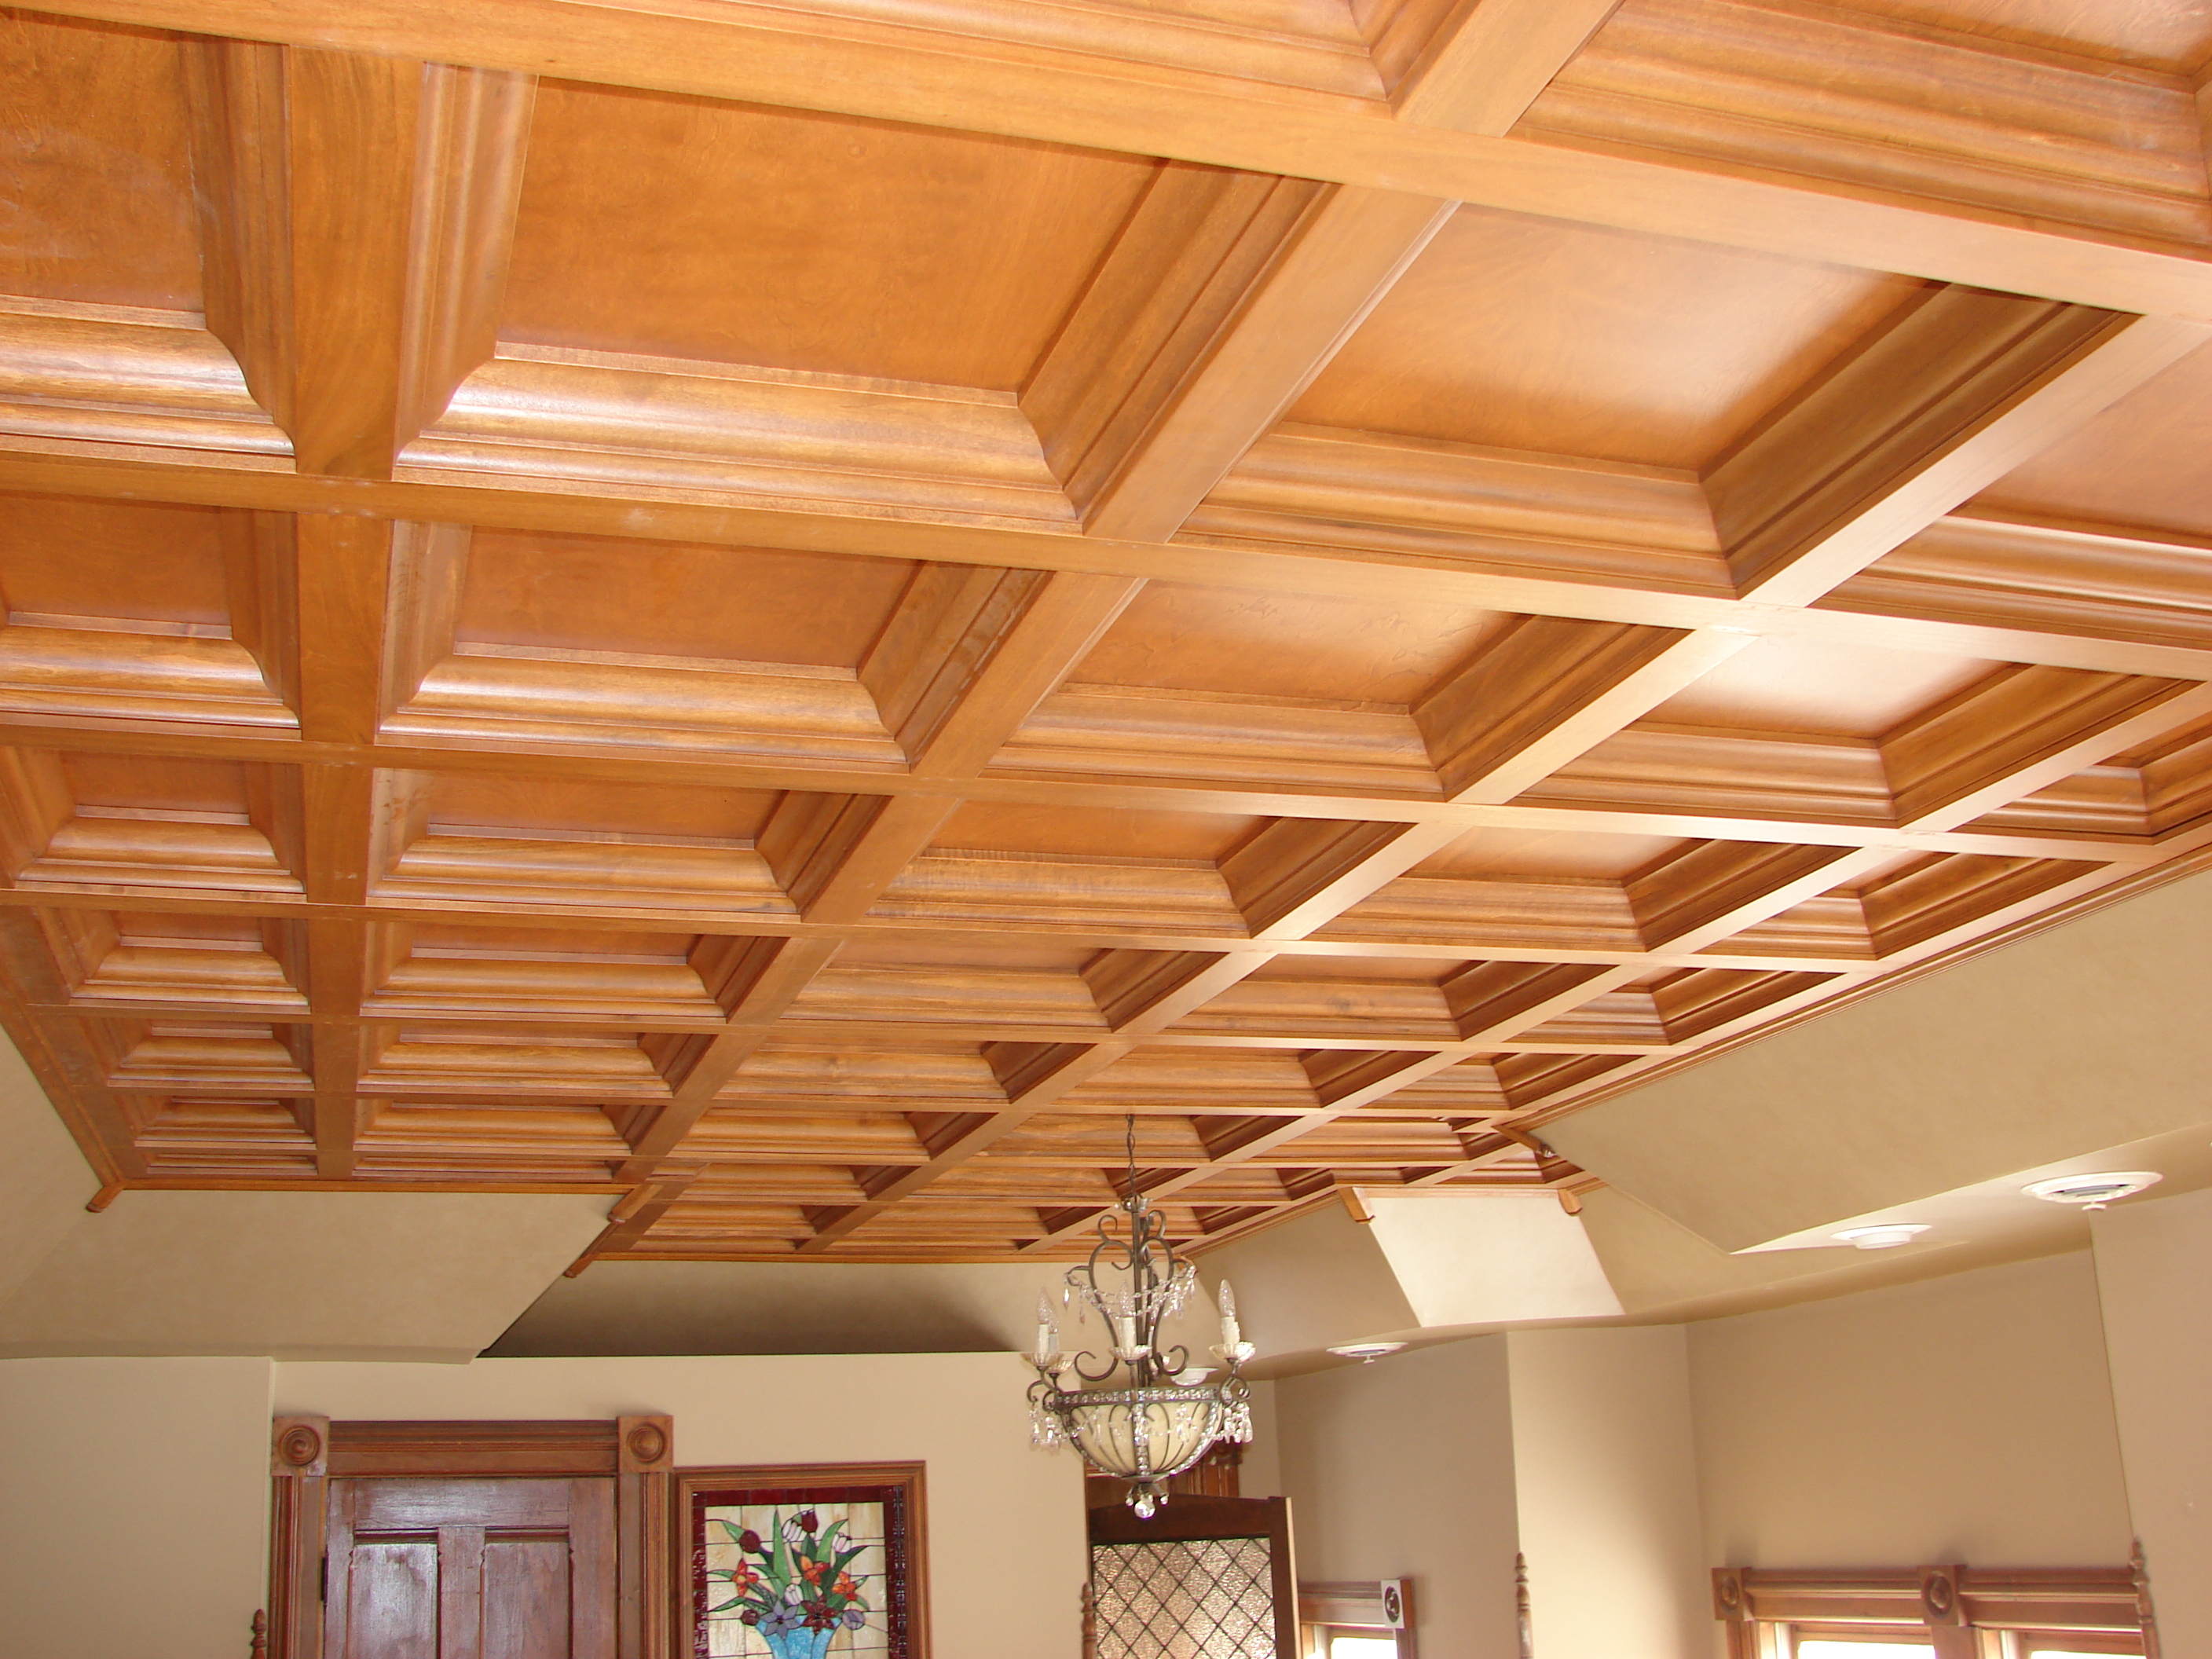 WoodGrid Coffered Ceilings by Midwestern Wood Products Co